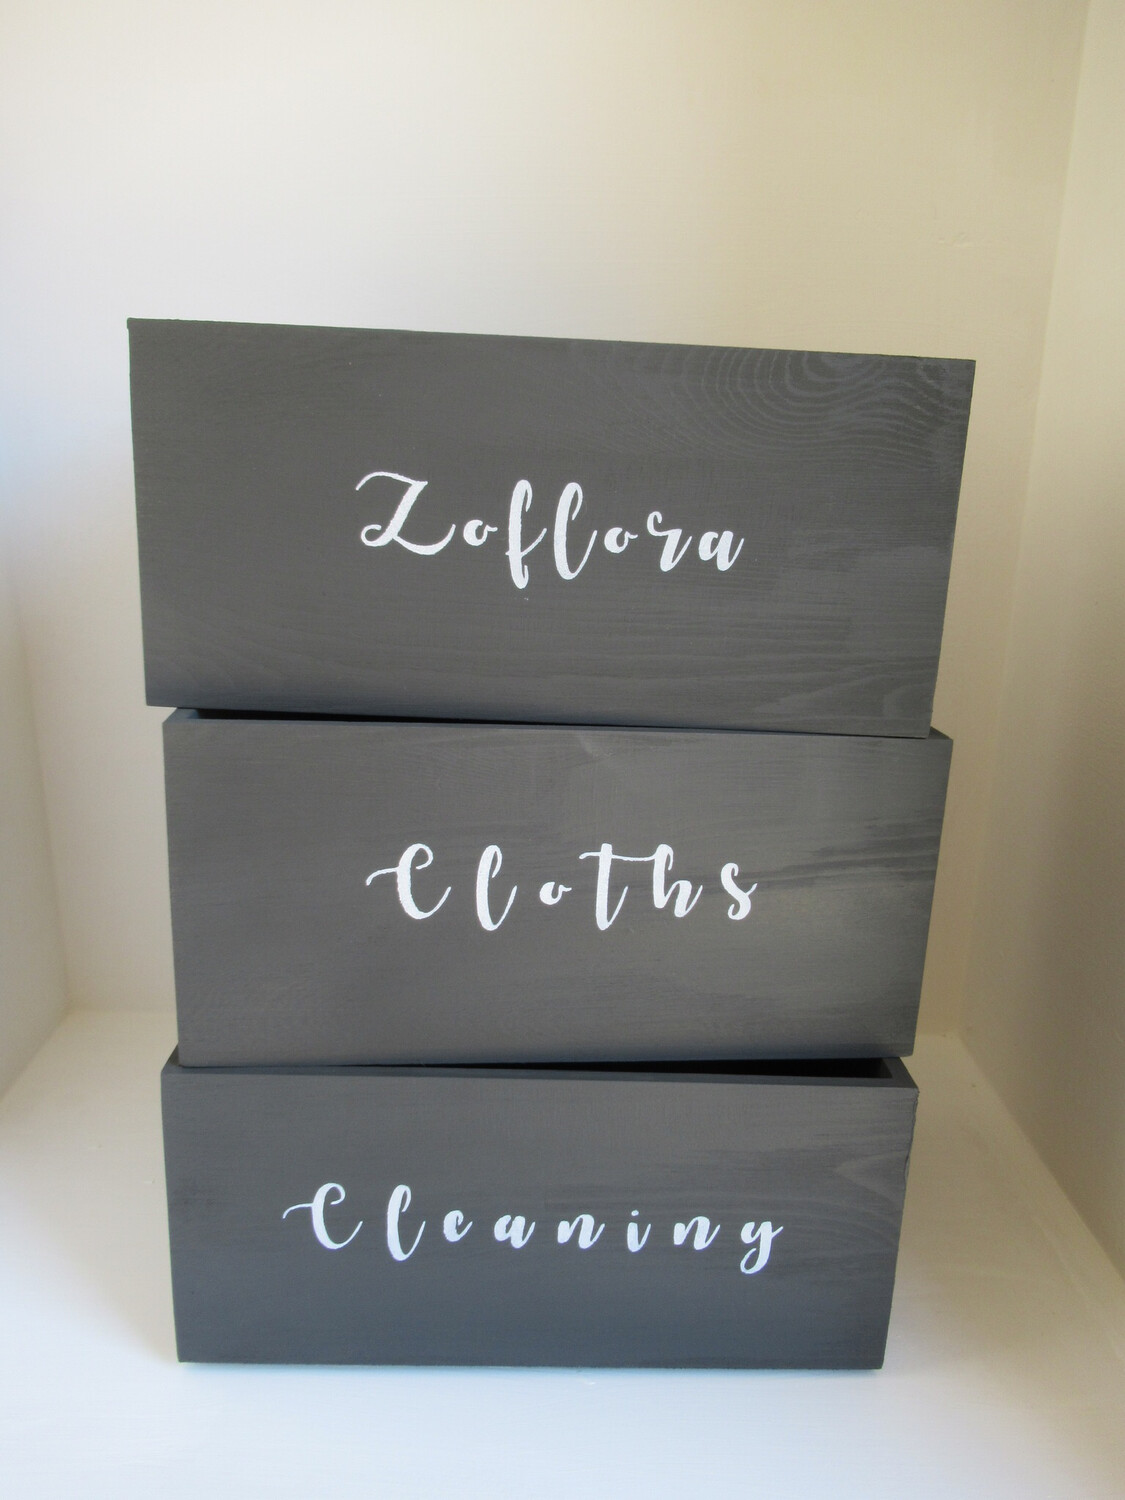 Cleaning storage bespoke boxes Mrs Hinch organise kitchen laundry boxes